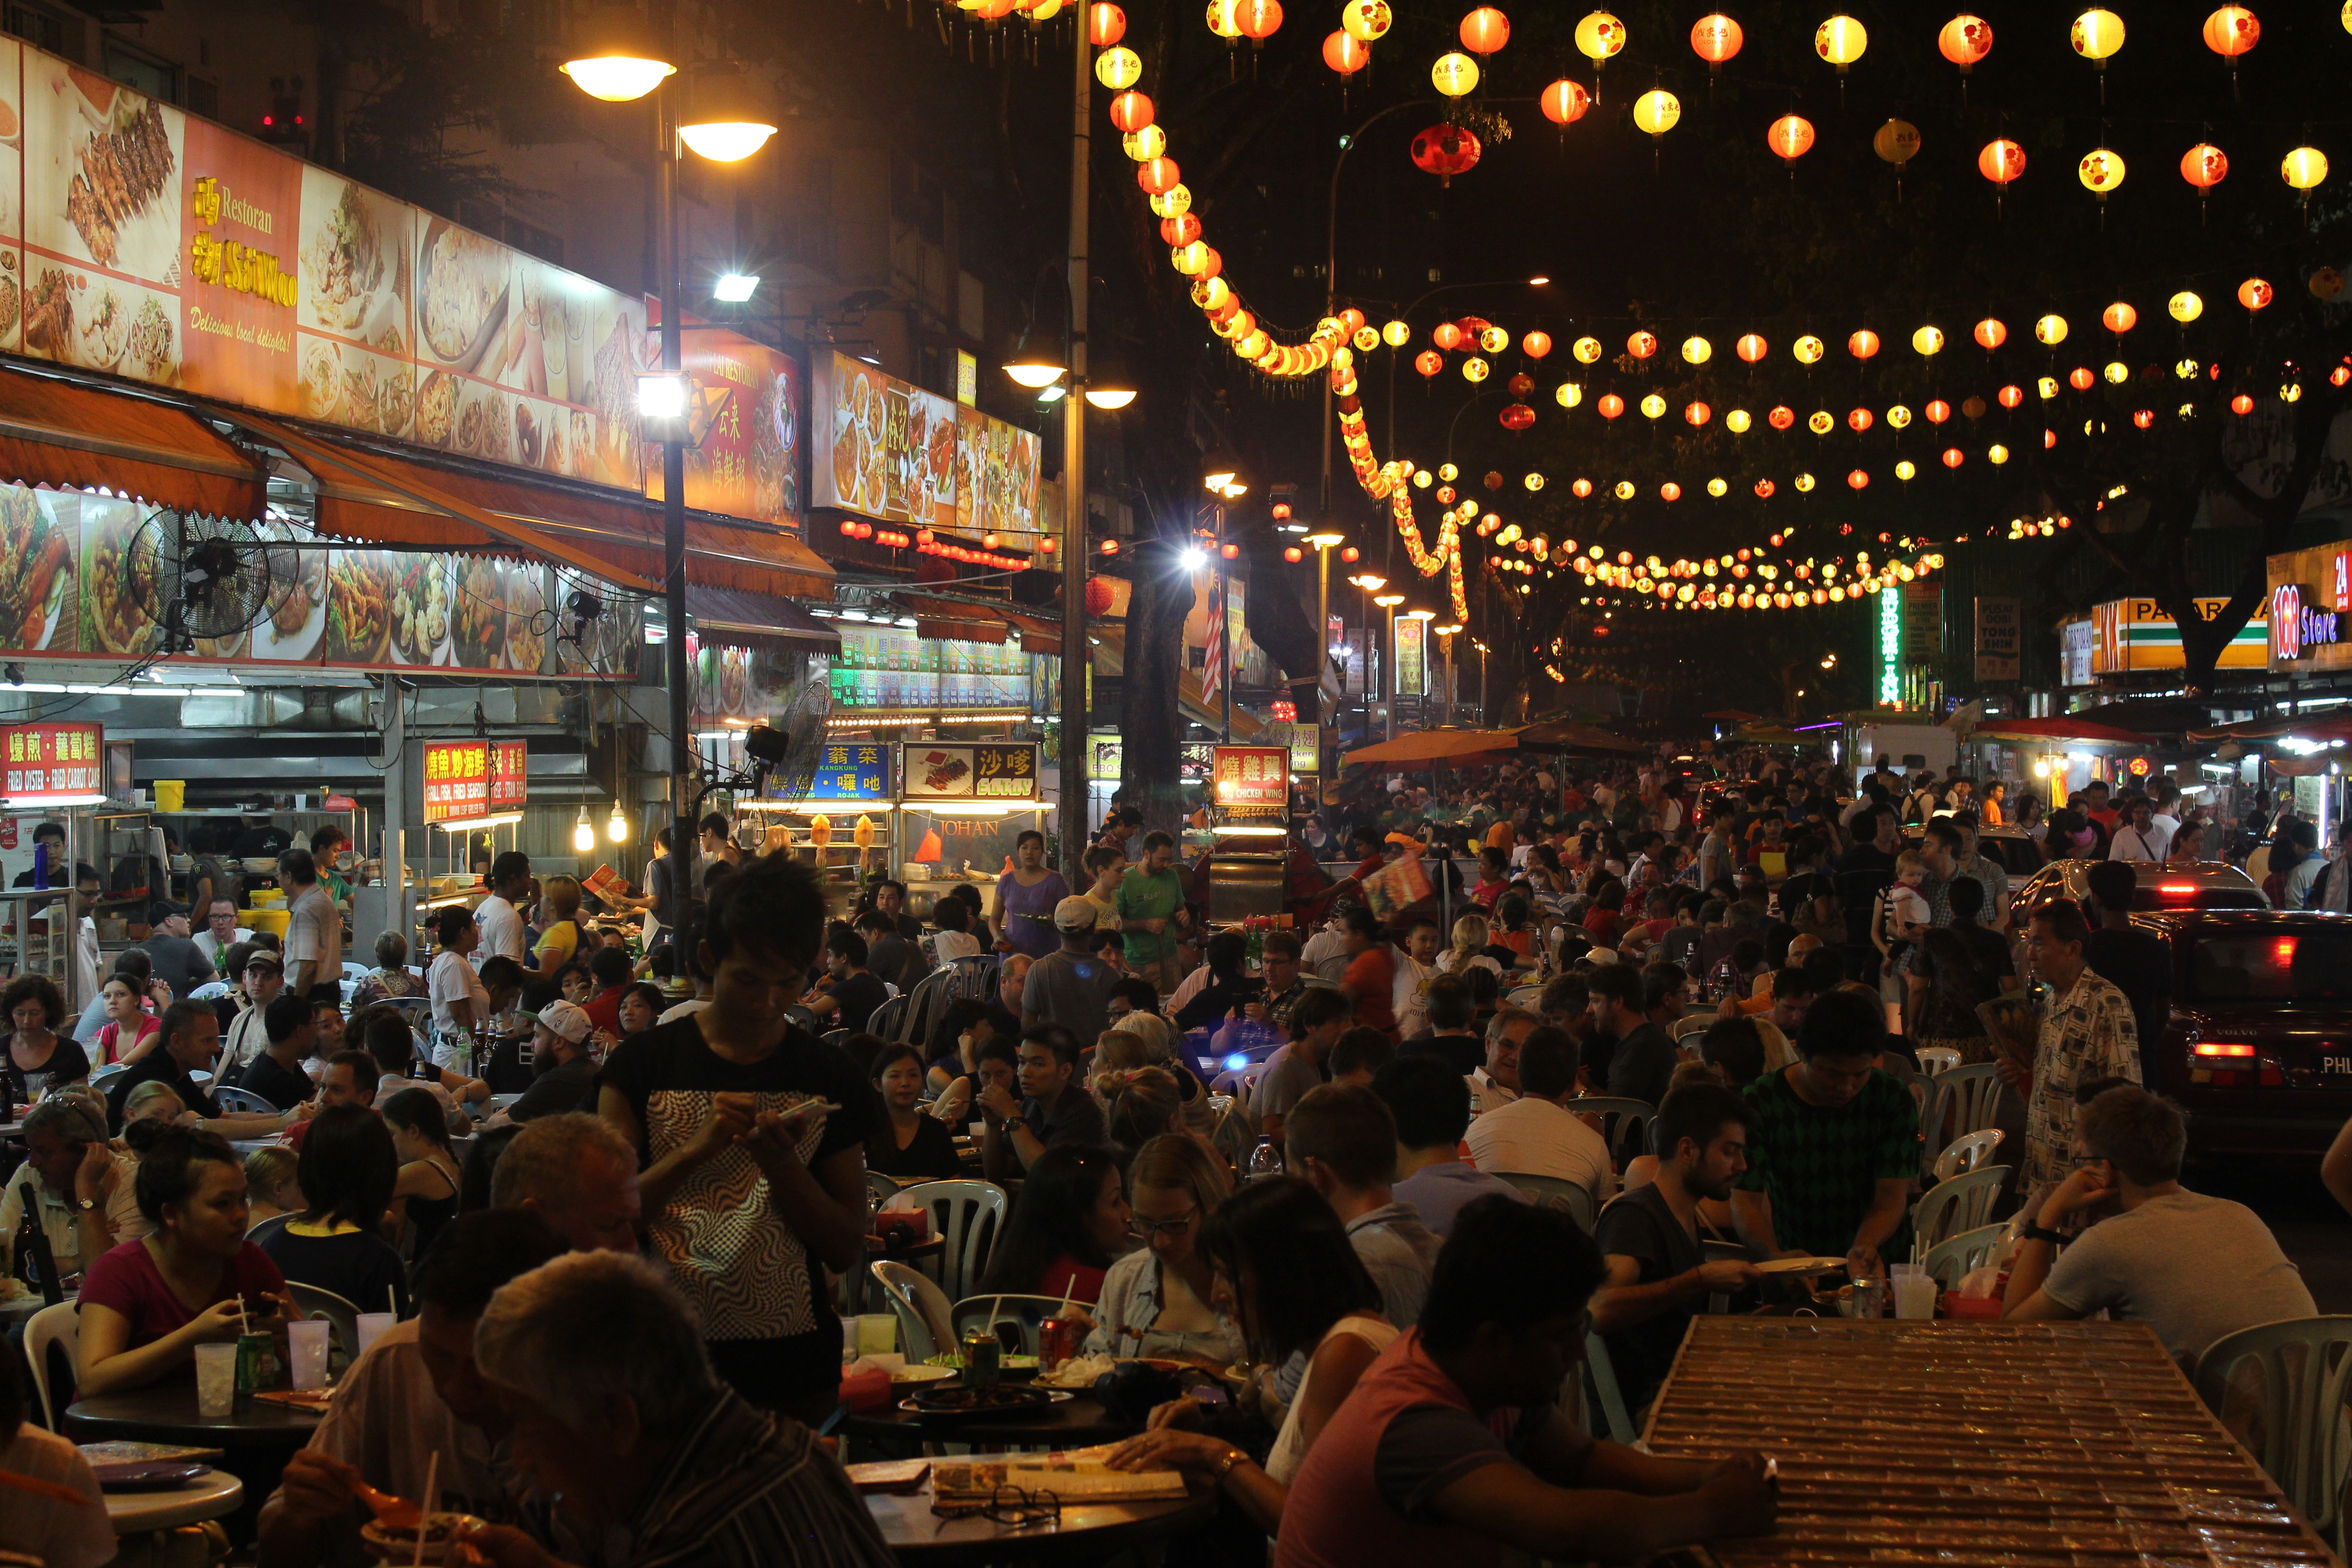 Very packed street full of food stalls and with lights strung across the street coloured red, yellow and orange.